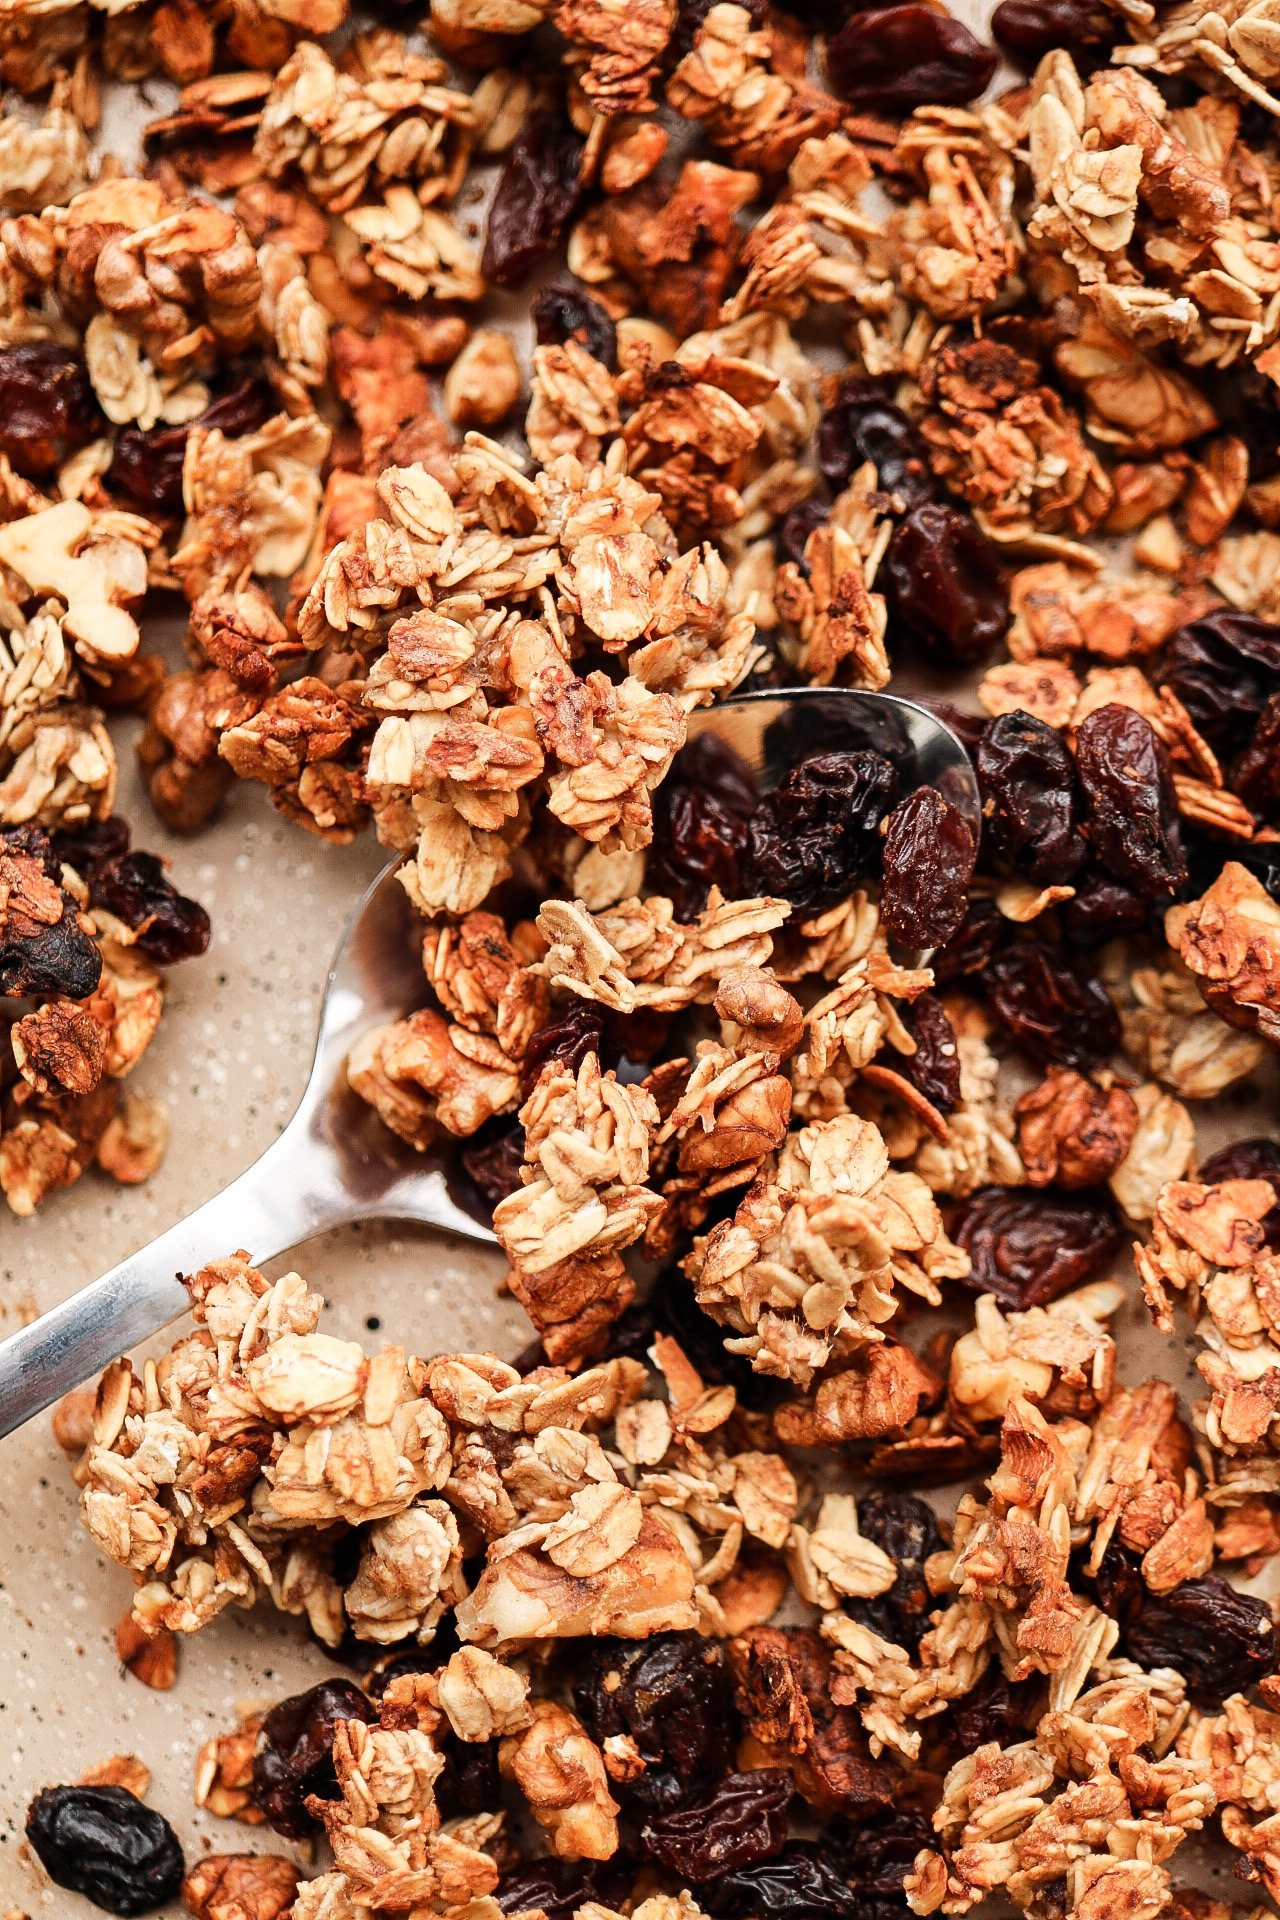 The granola gets super crispy and the raisins get even juicier as they bake.